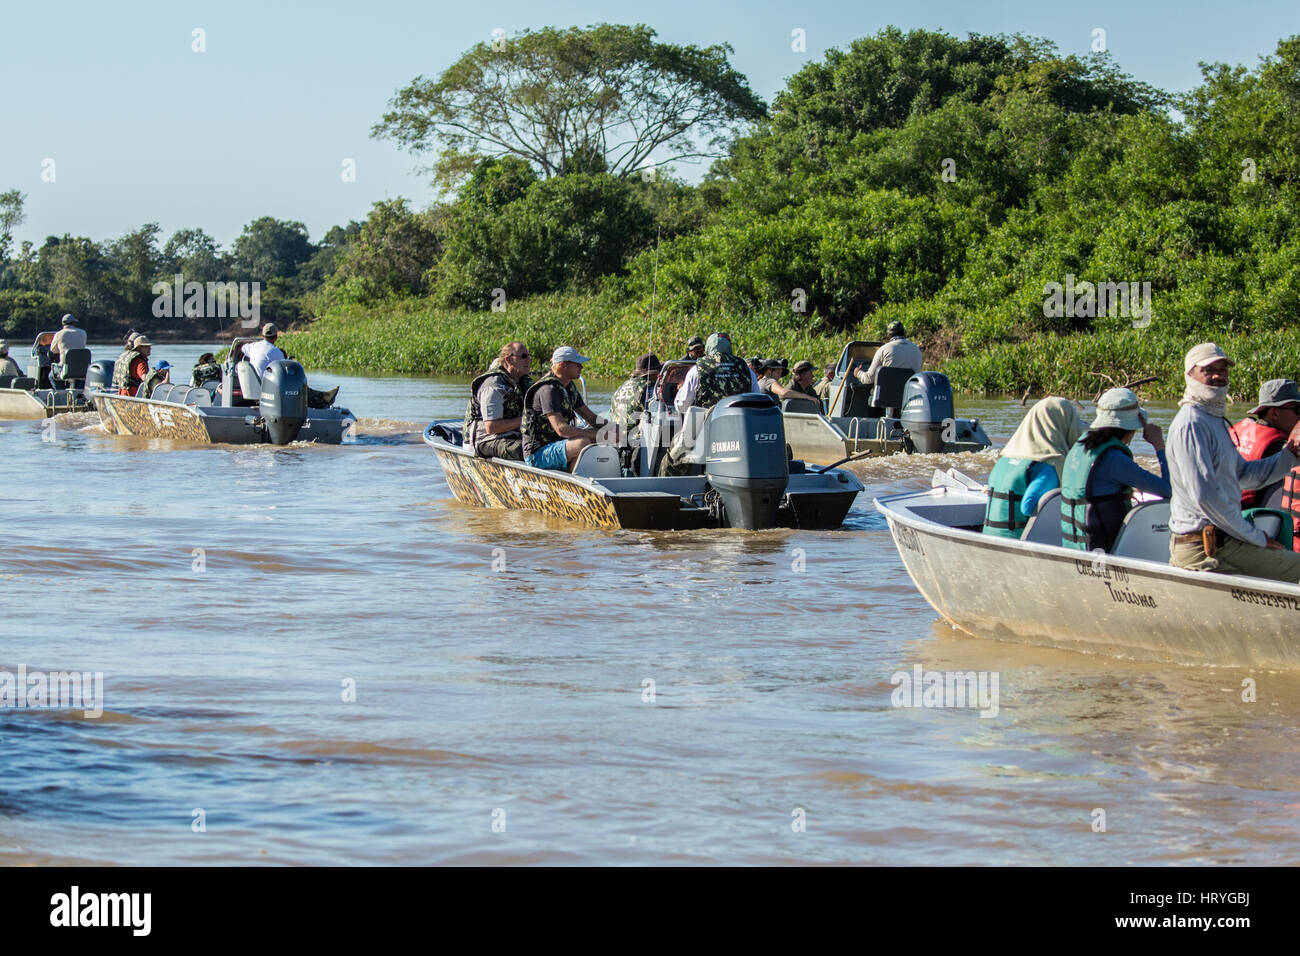 A group of boats full of tourists waiting for a jaguar on shore to get up from his rest and be active, in the Pantanal - Stock Image